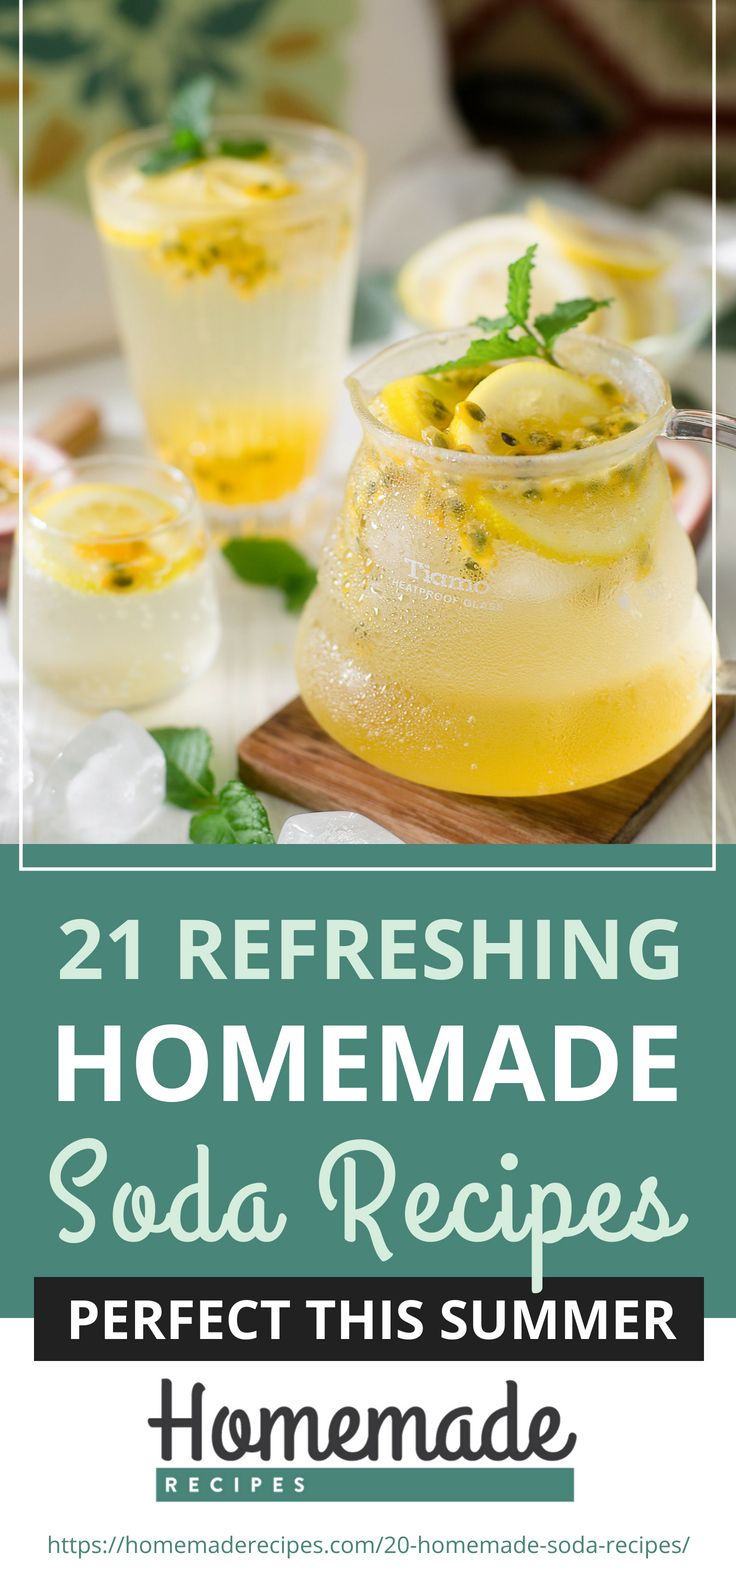 Pinterest Placard | 21 Refreshing Homemade Soda Recipes Perfect This Summer